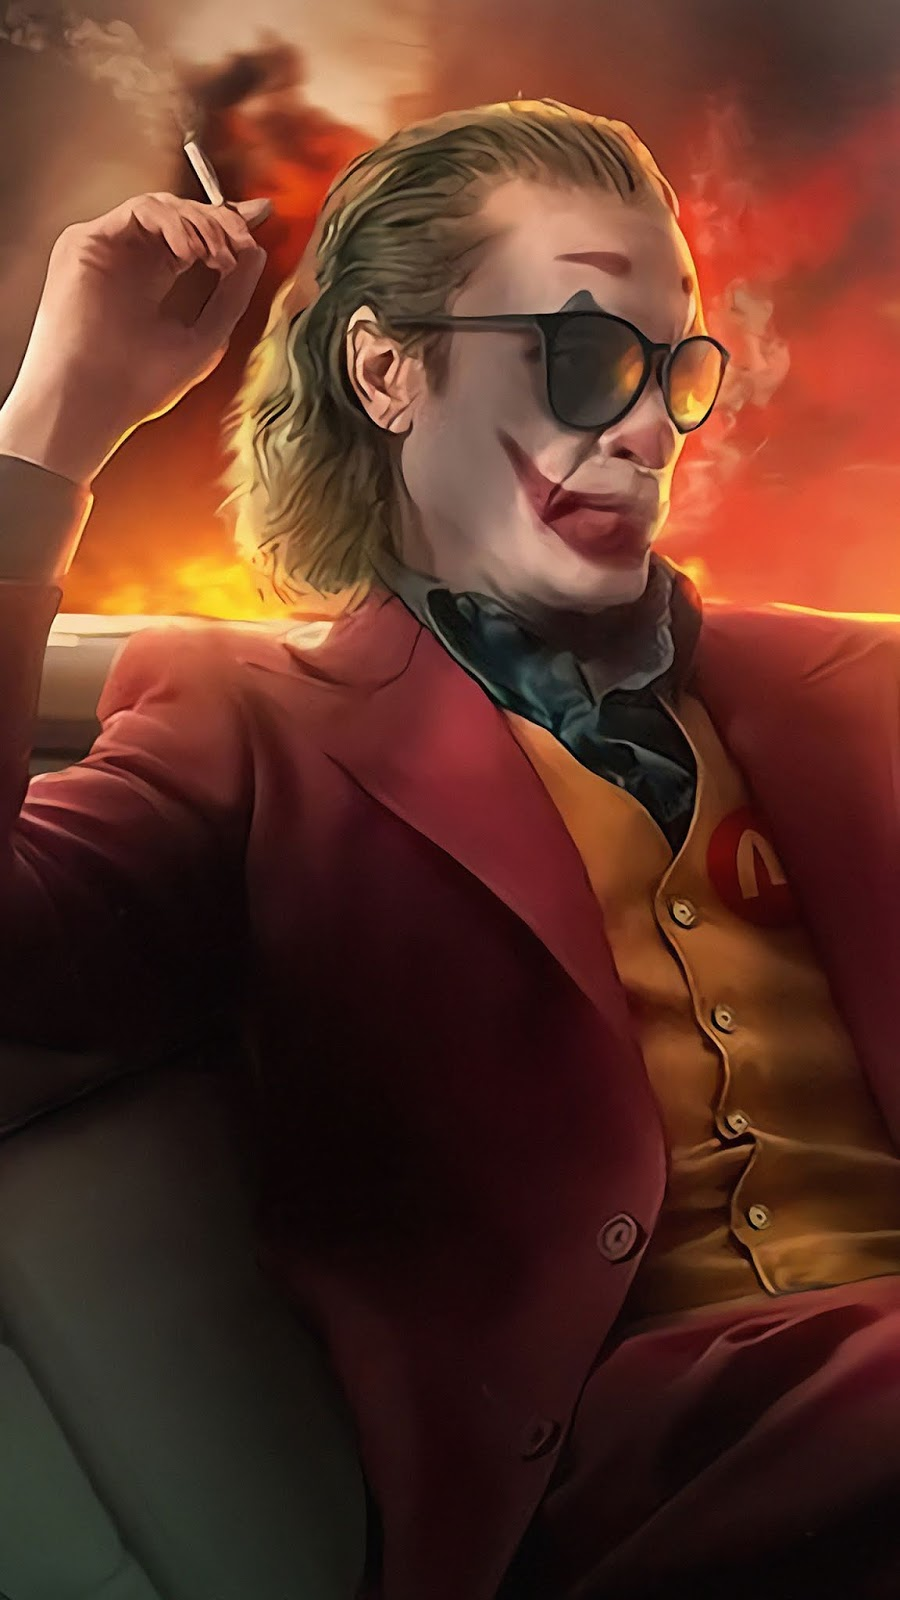 Joker 2019 Movie art Mobile Wallpaper